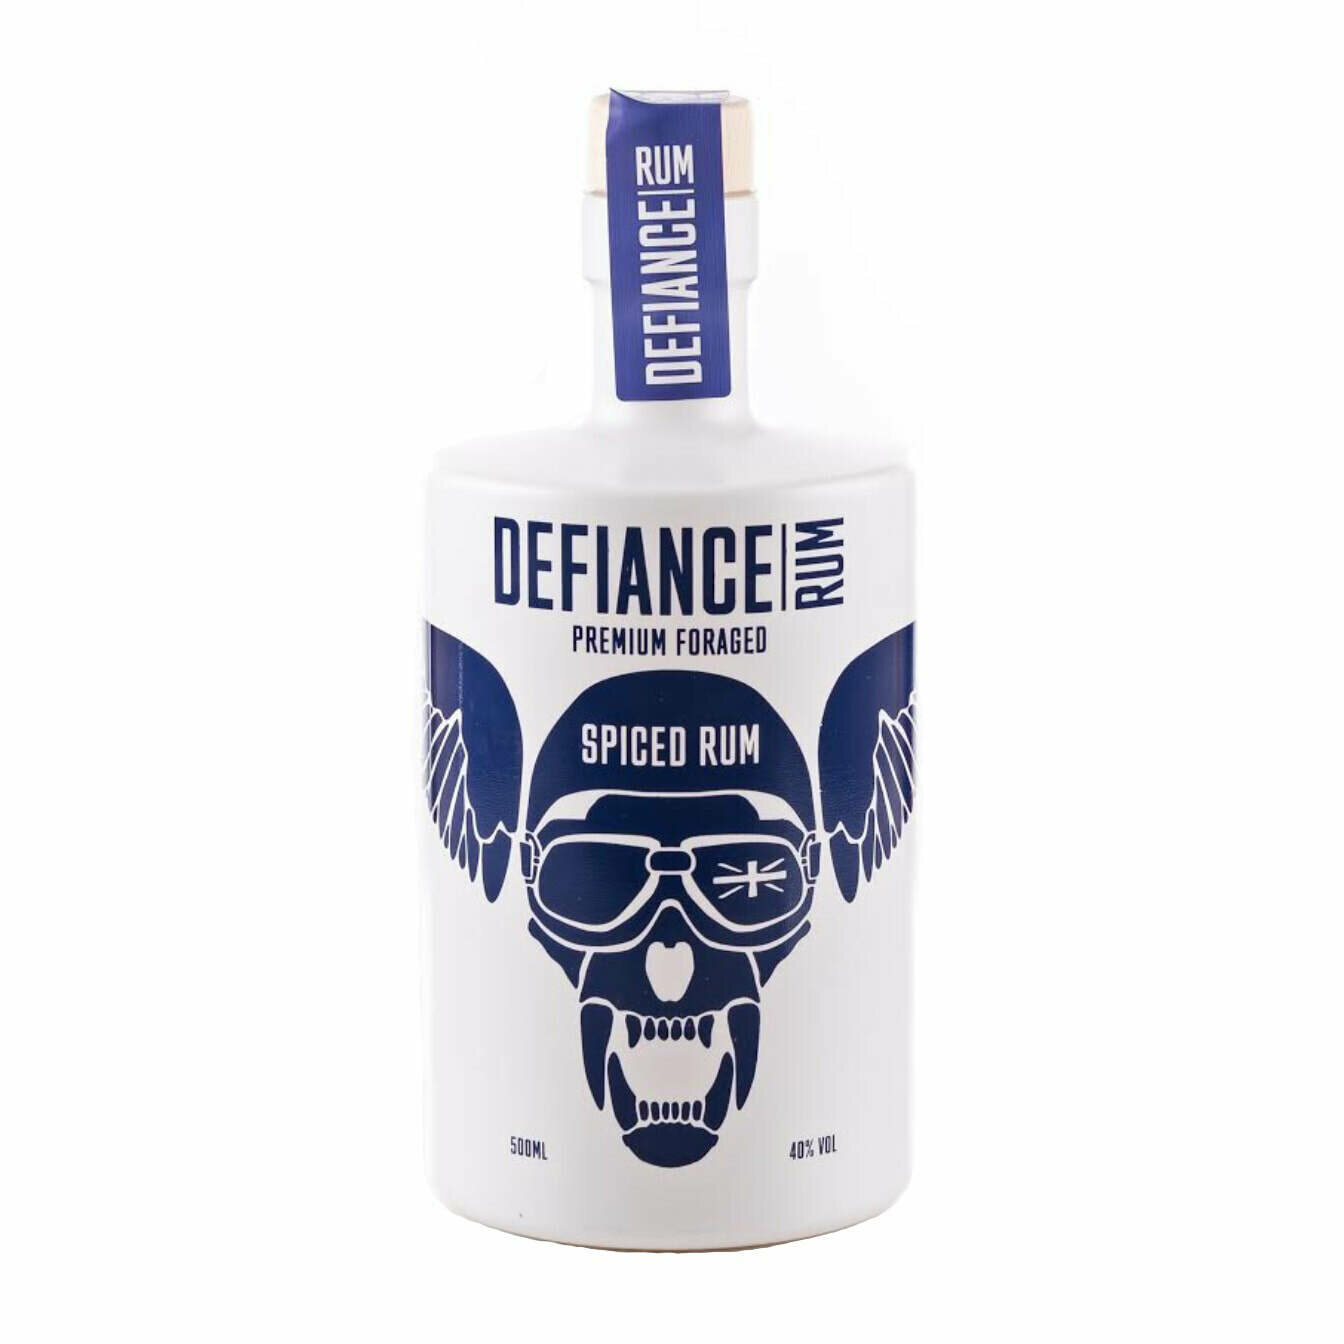 Defiance Spiced Rum